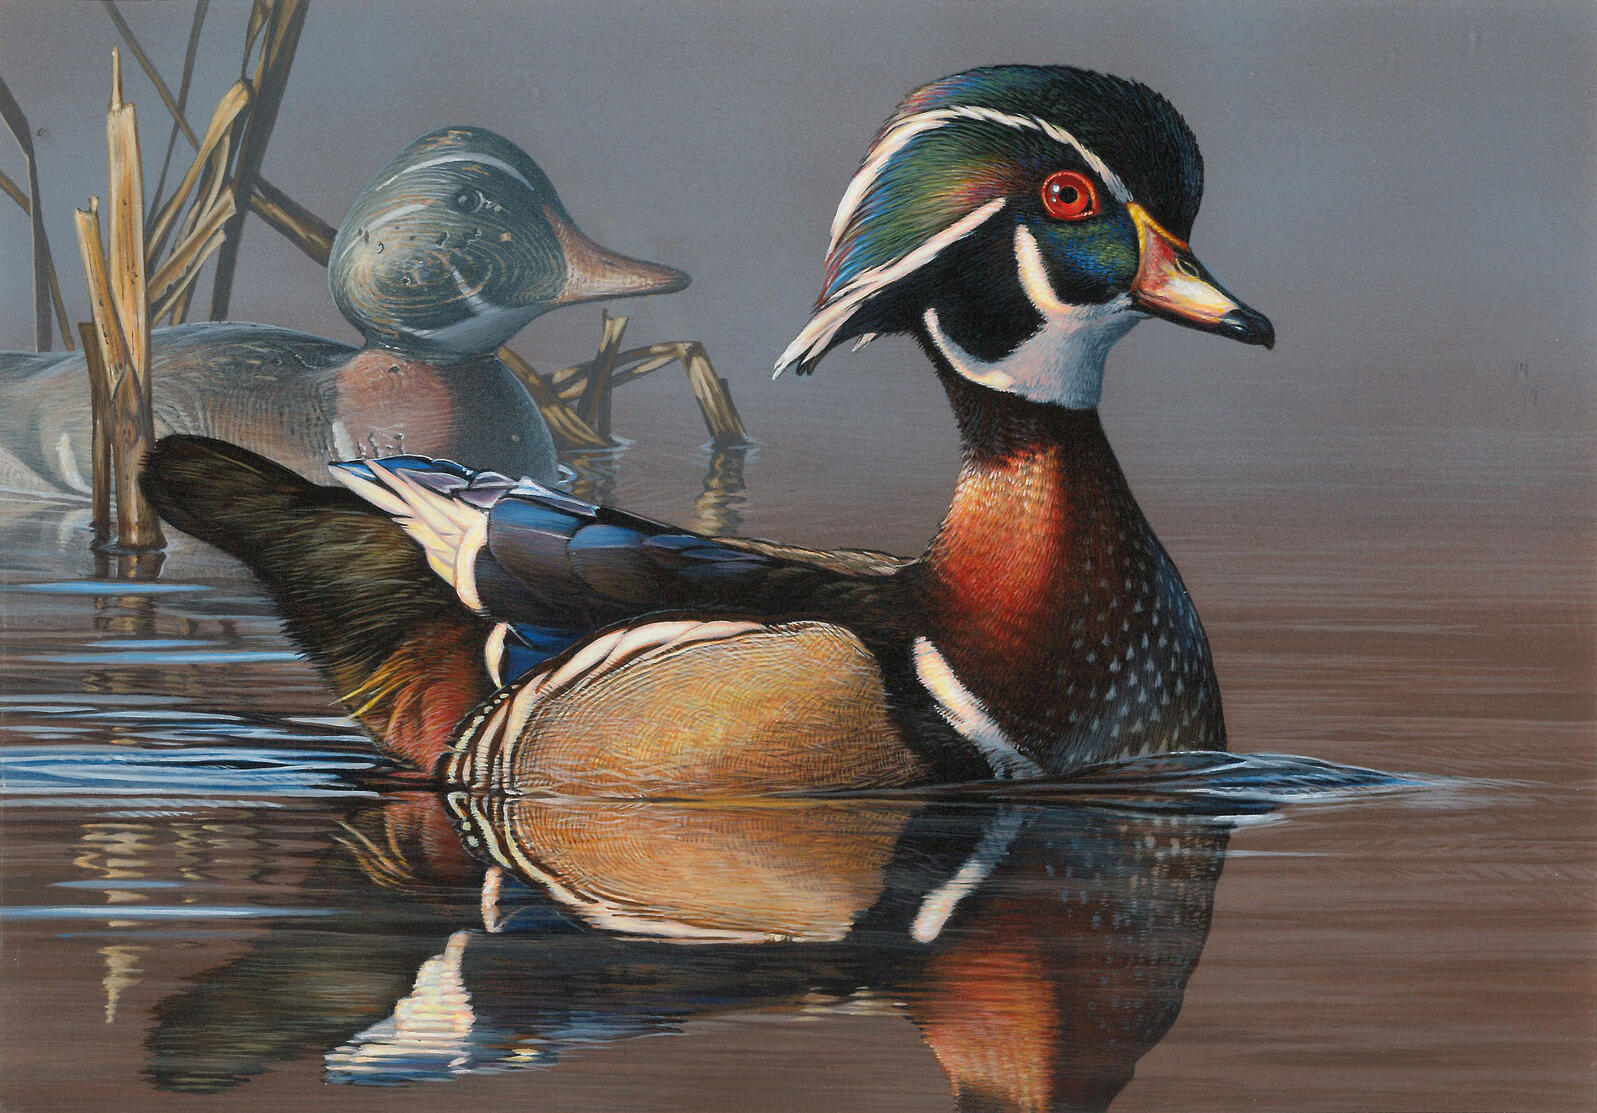 Acrylic painting of a Wood Duck and decoy by Scot Storm, winner of the 2018 Federal Duck Stamp Contest, which had a hunting theme.